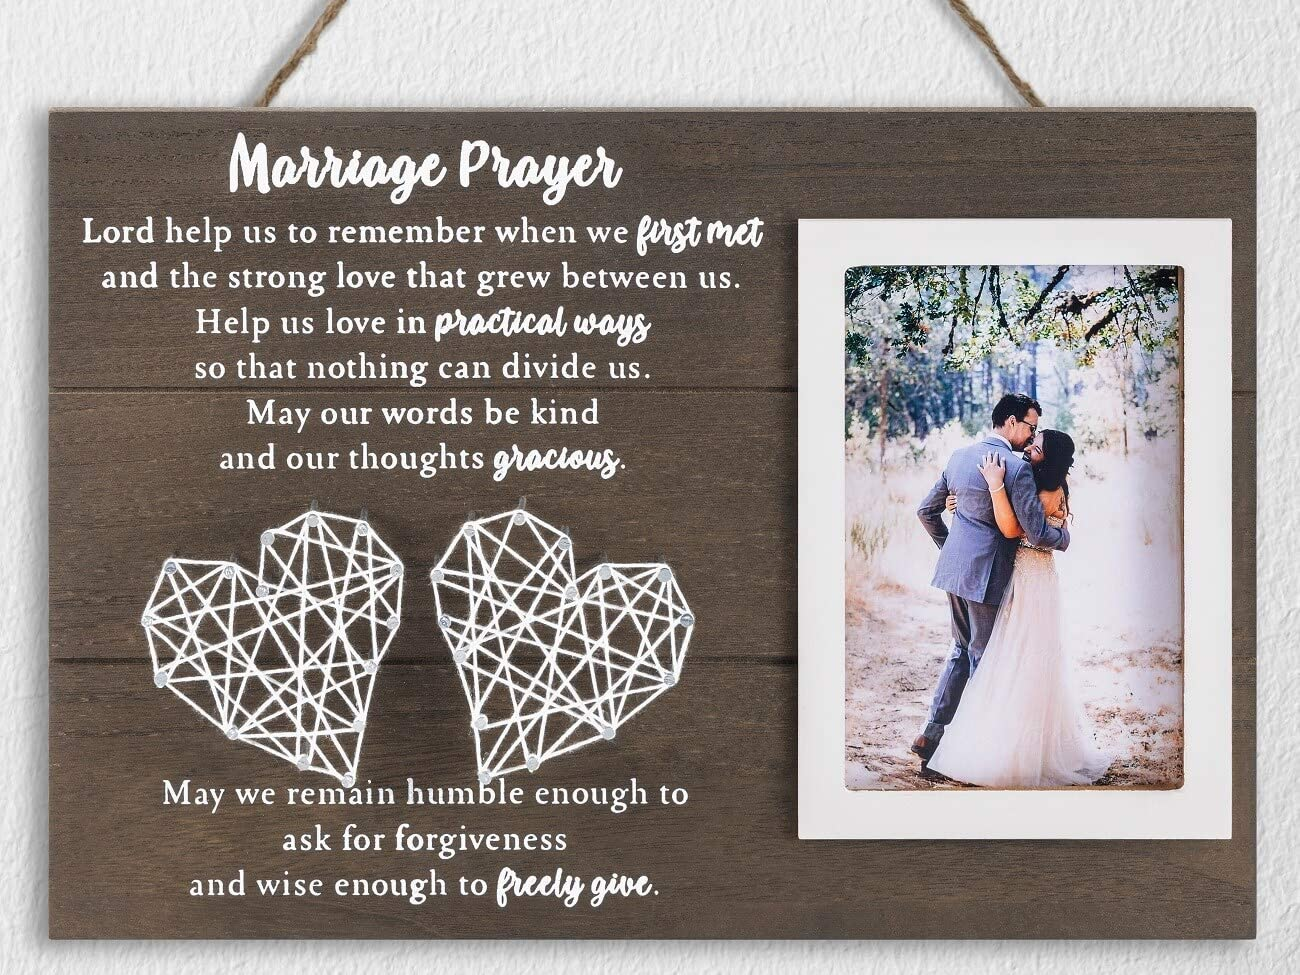 12.5×8.5 Marriage Prayer Wedding Gifts for Couples Anniversary, Rustic Wood Plaque Home Bedroom Wall Decor, Religious Engagement Gifts for Bride Her, Personalized Picture Frame & Handmade String Heart